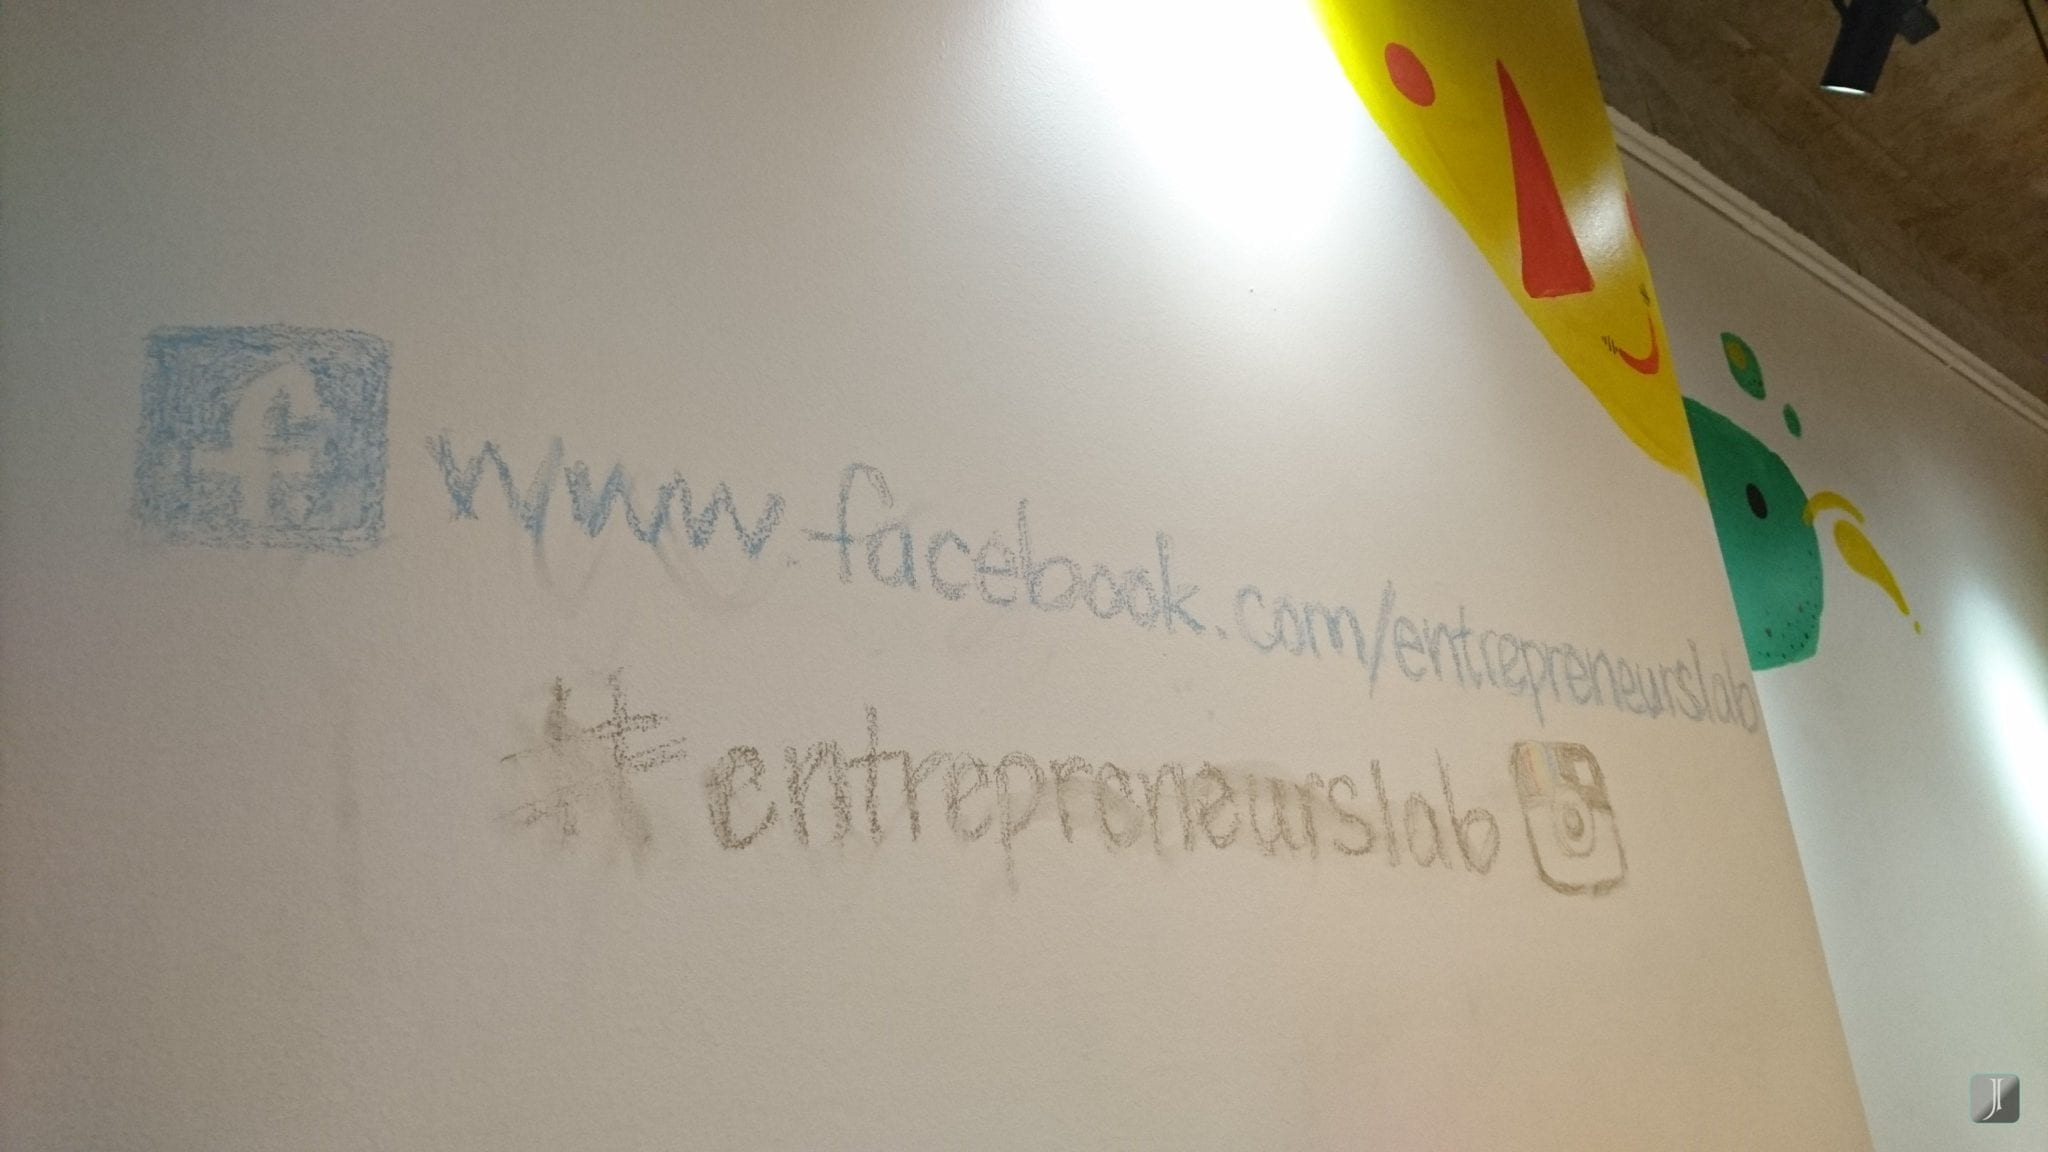 The Entrepreneurs' Lab - visit by Jay Chong (26)